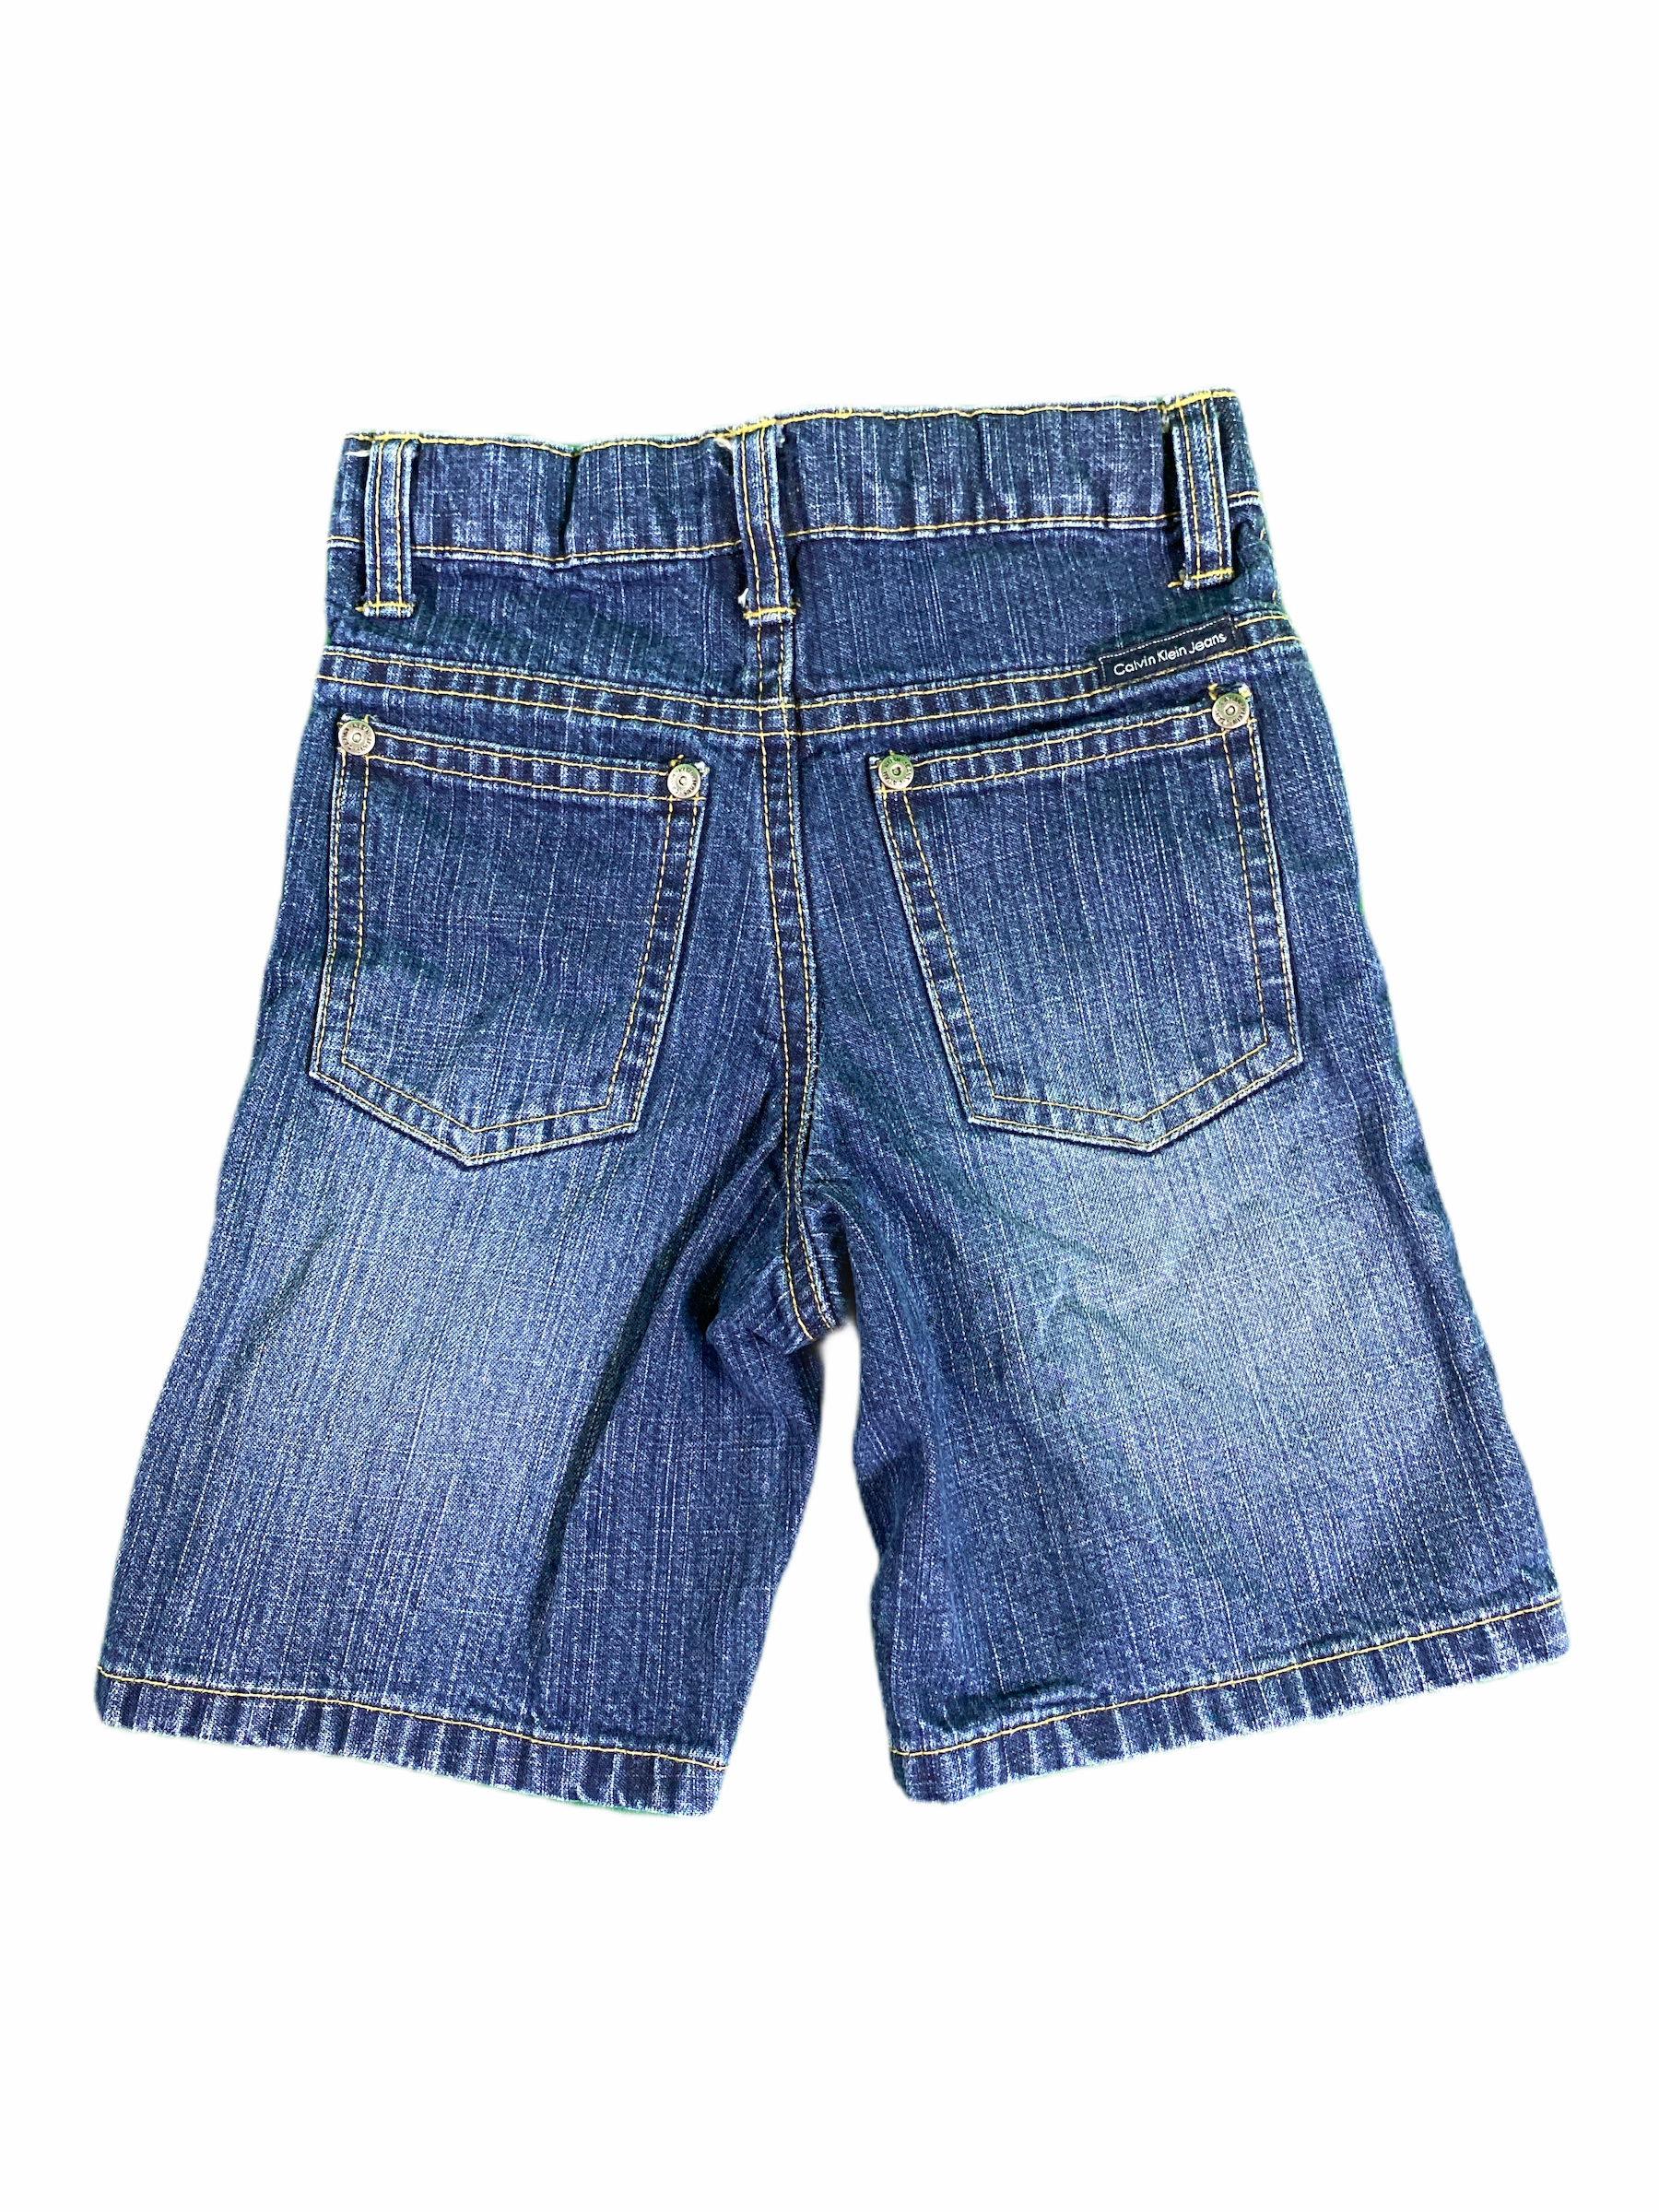 Calvin Klein Denim Shorts (3T Boys)